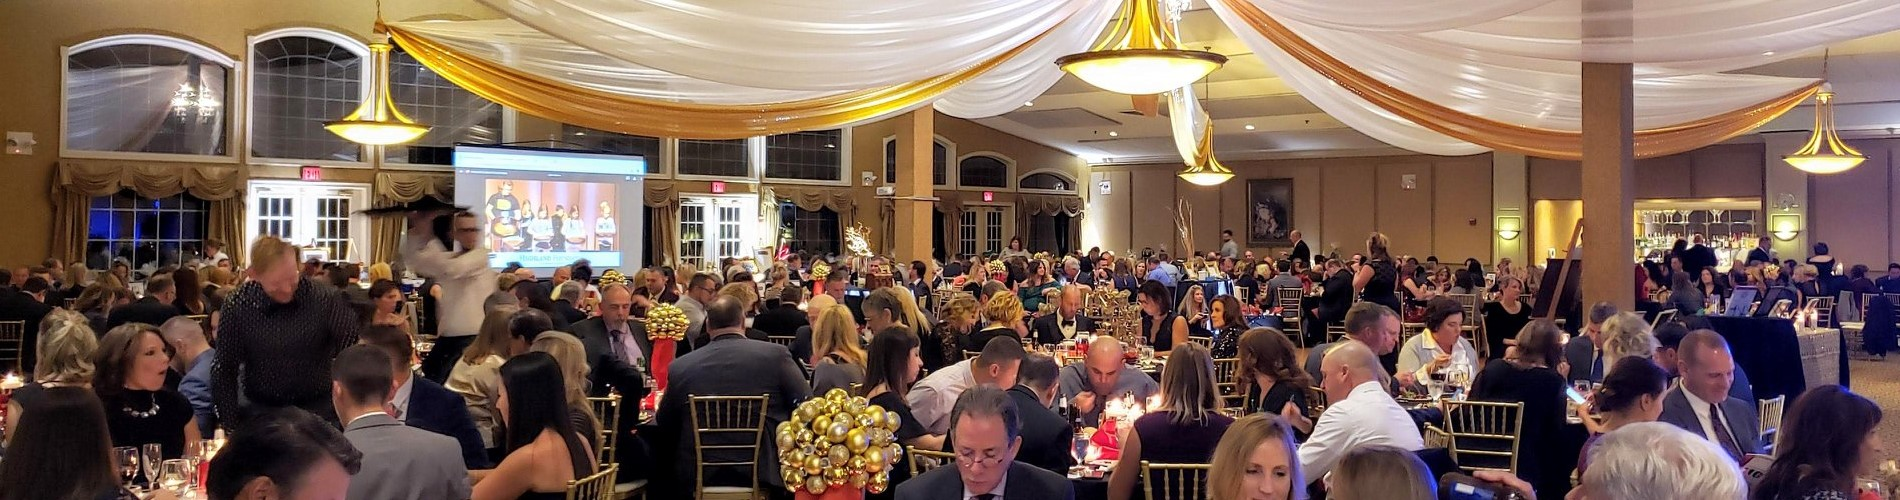 15th Annual Dinner Auction Event